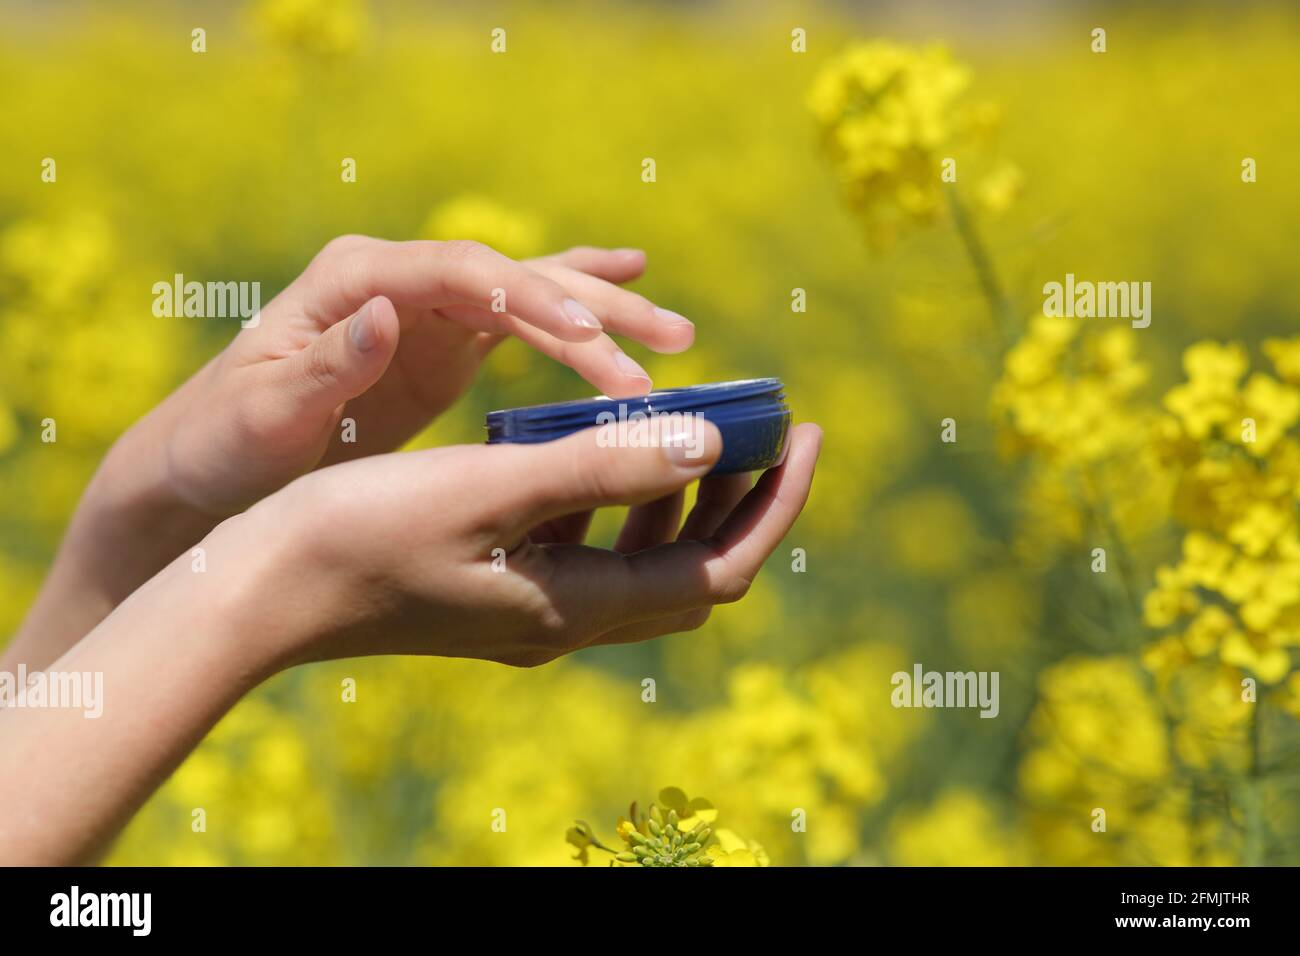 Close up of a woman hand holding moisturizer jar in a yellow field in spring season Stock Photo